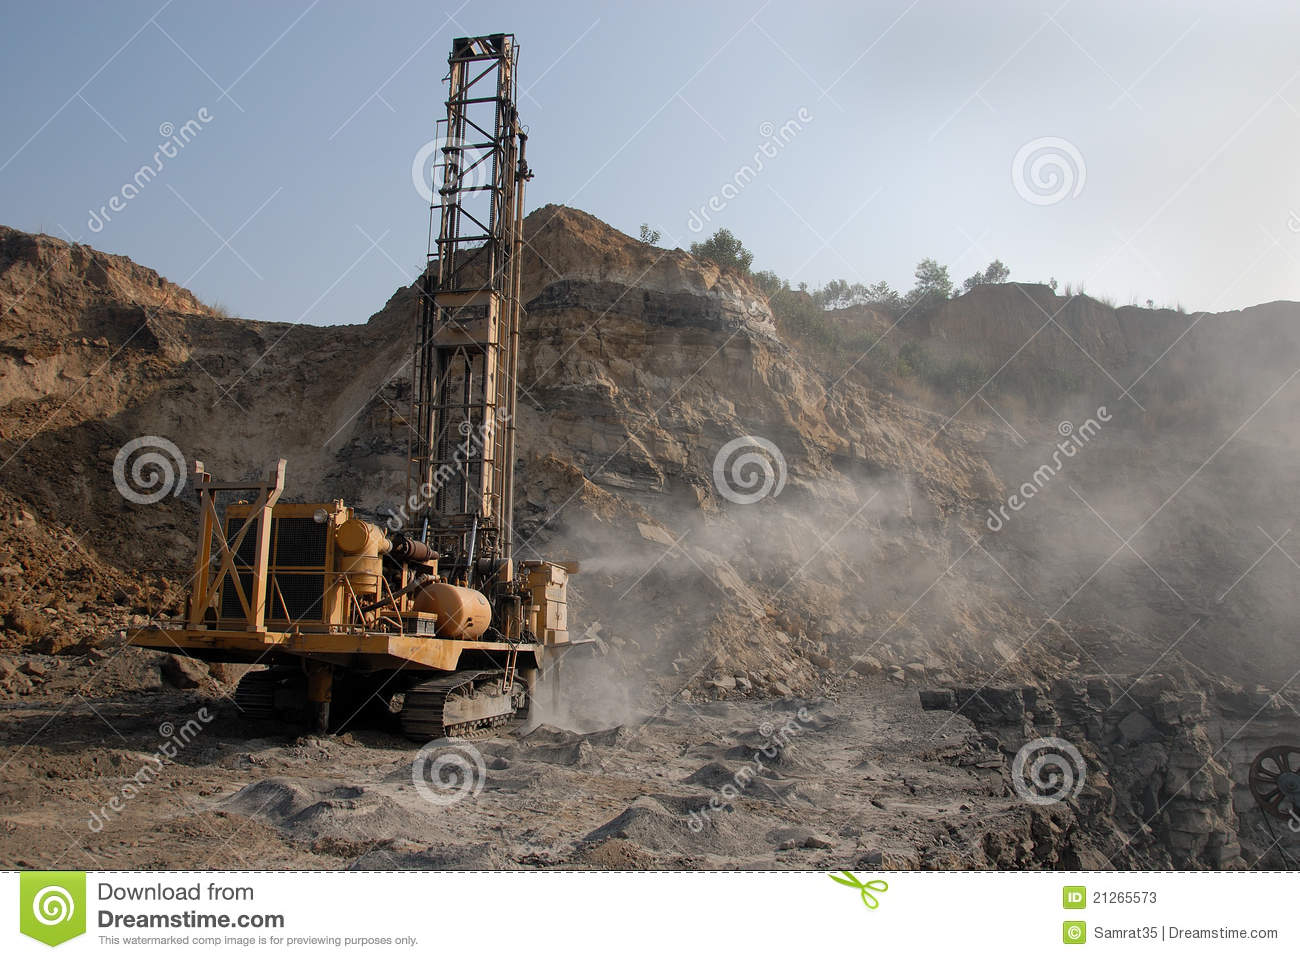 Coal Mining Equipment Editorial Stock Photo - Image: 21265573